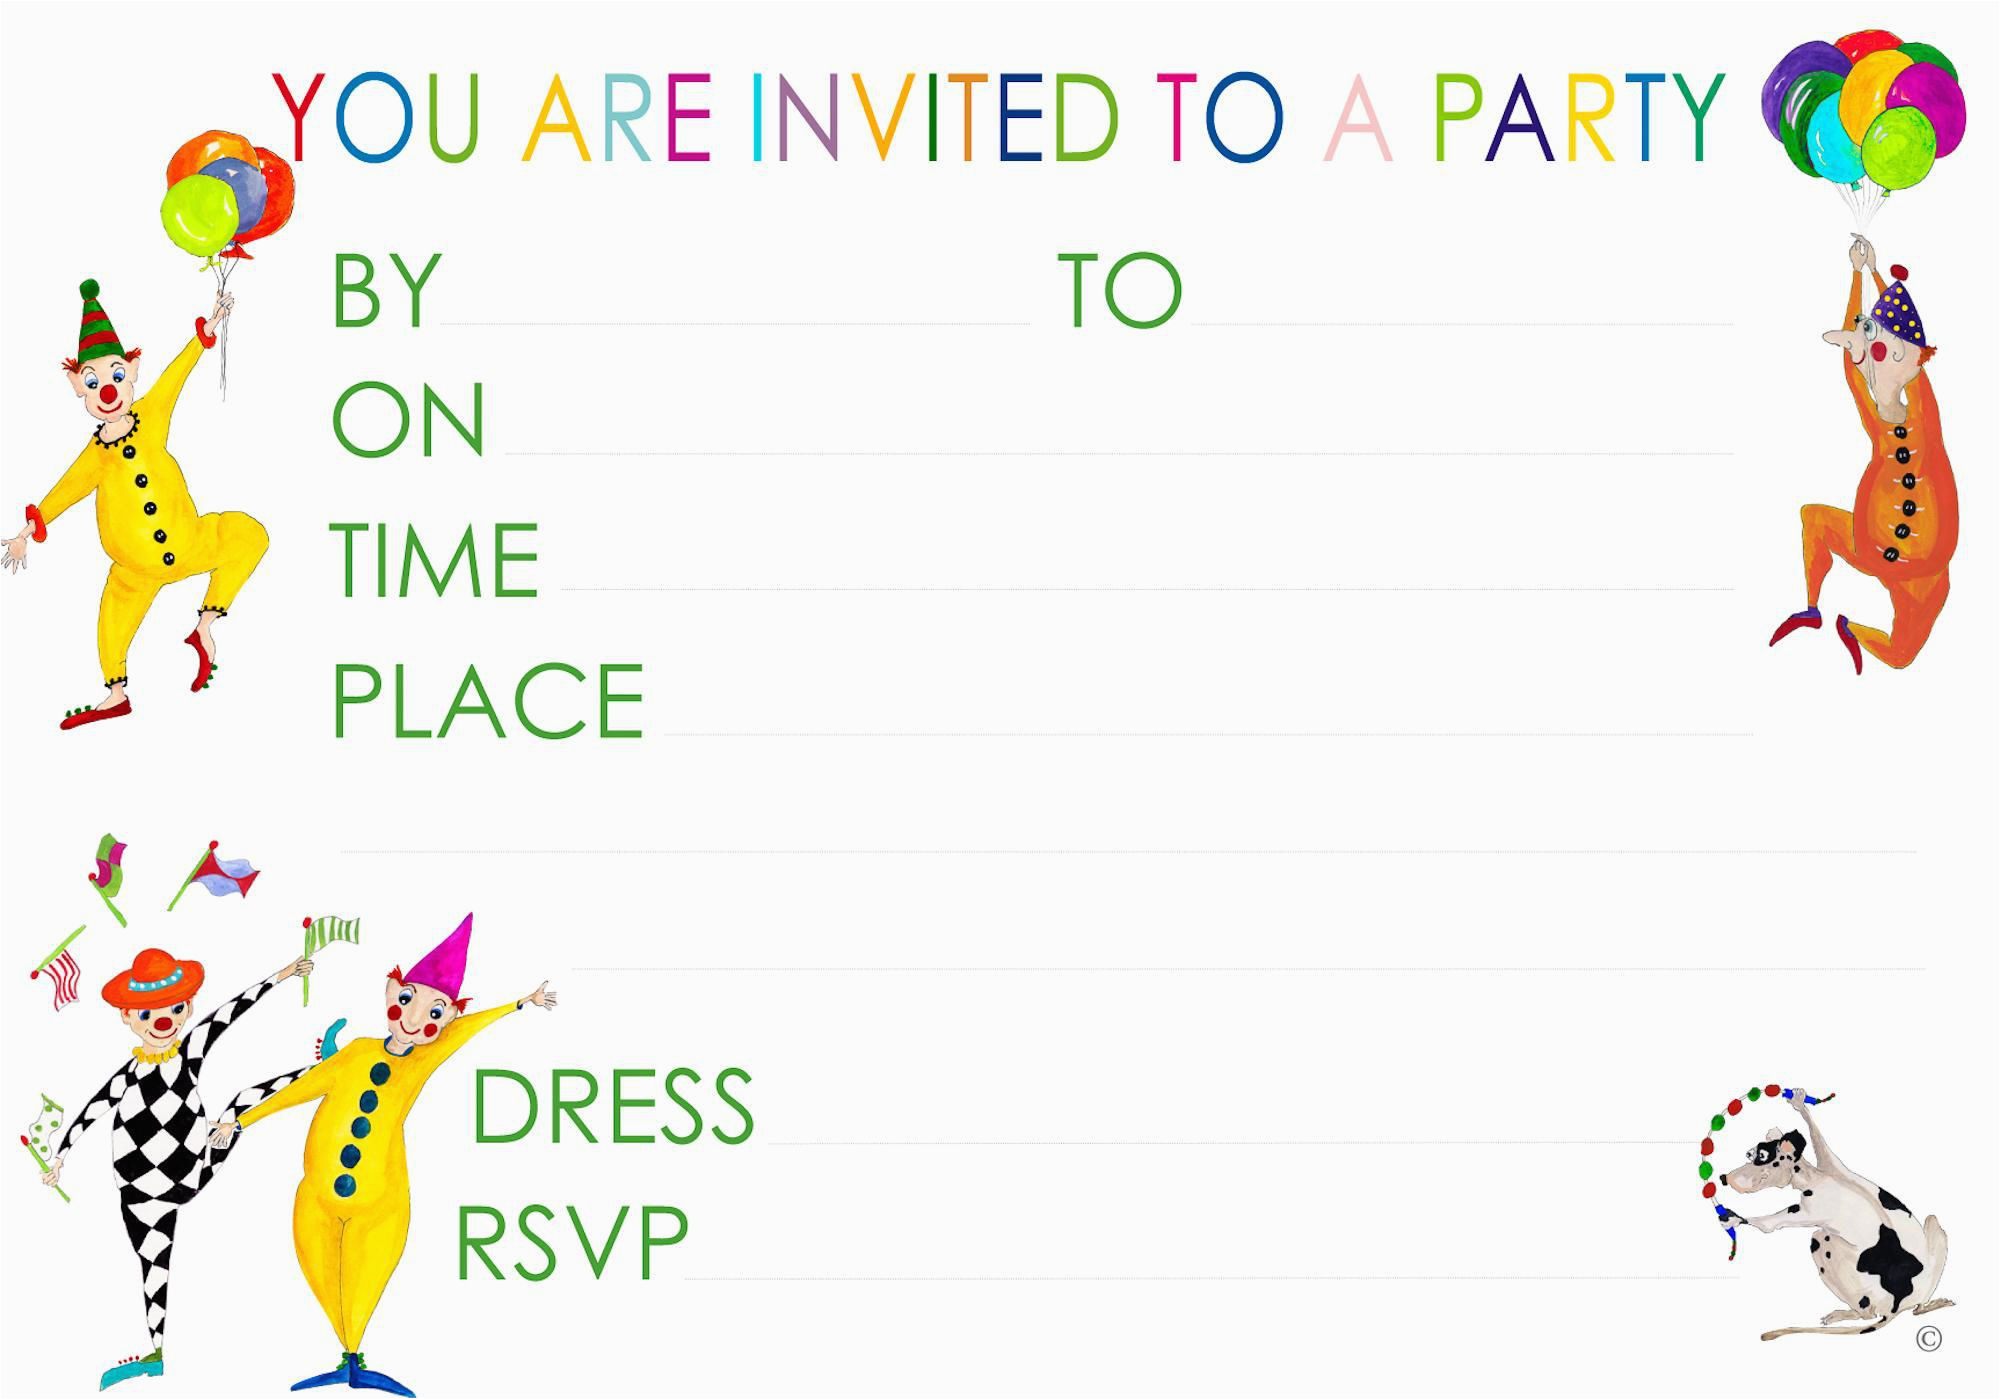 Print Your Own Birthday Invitations Free Make Party Templates